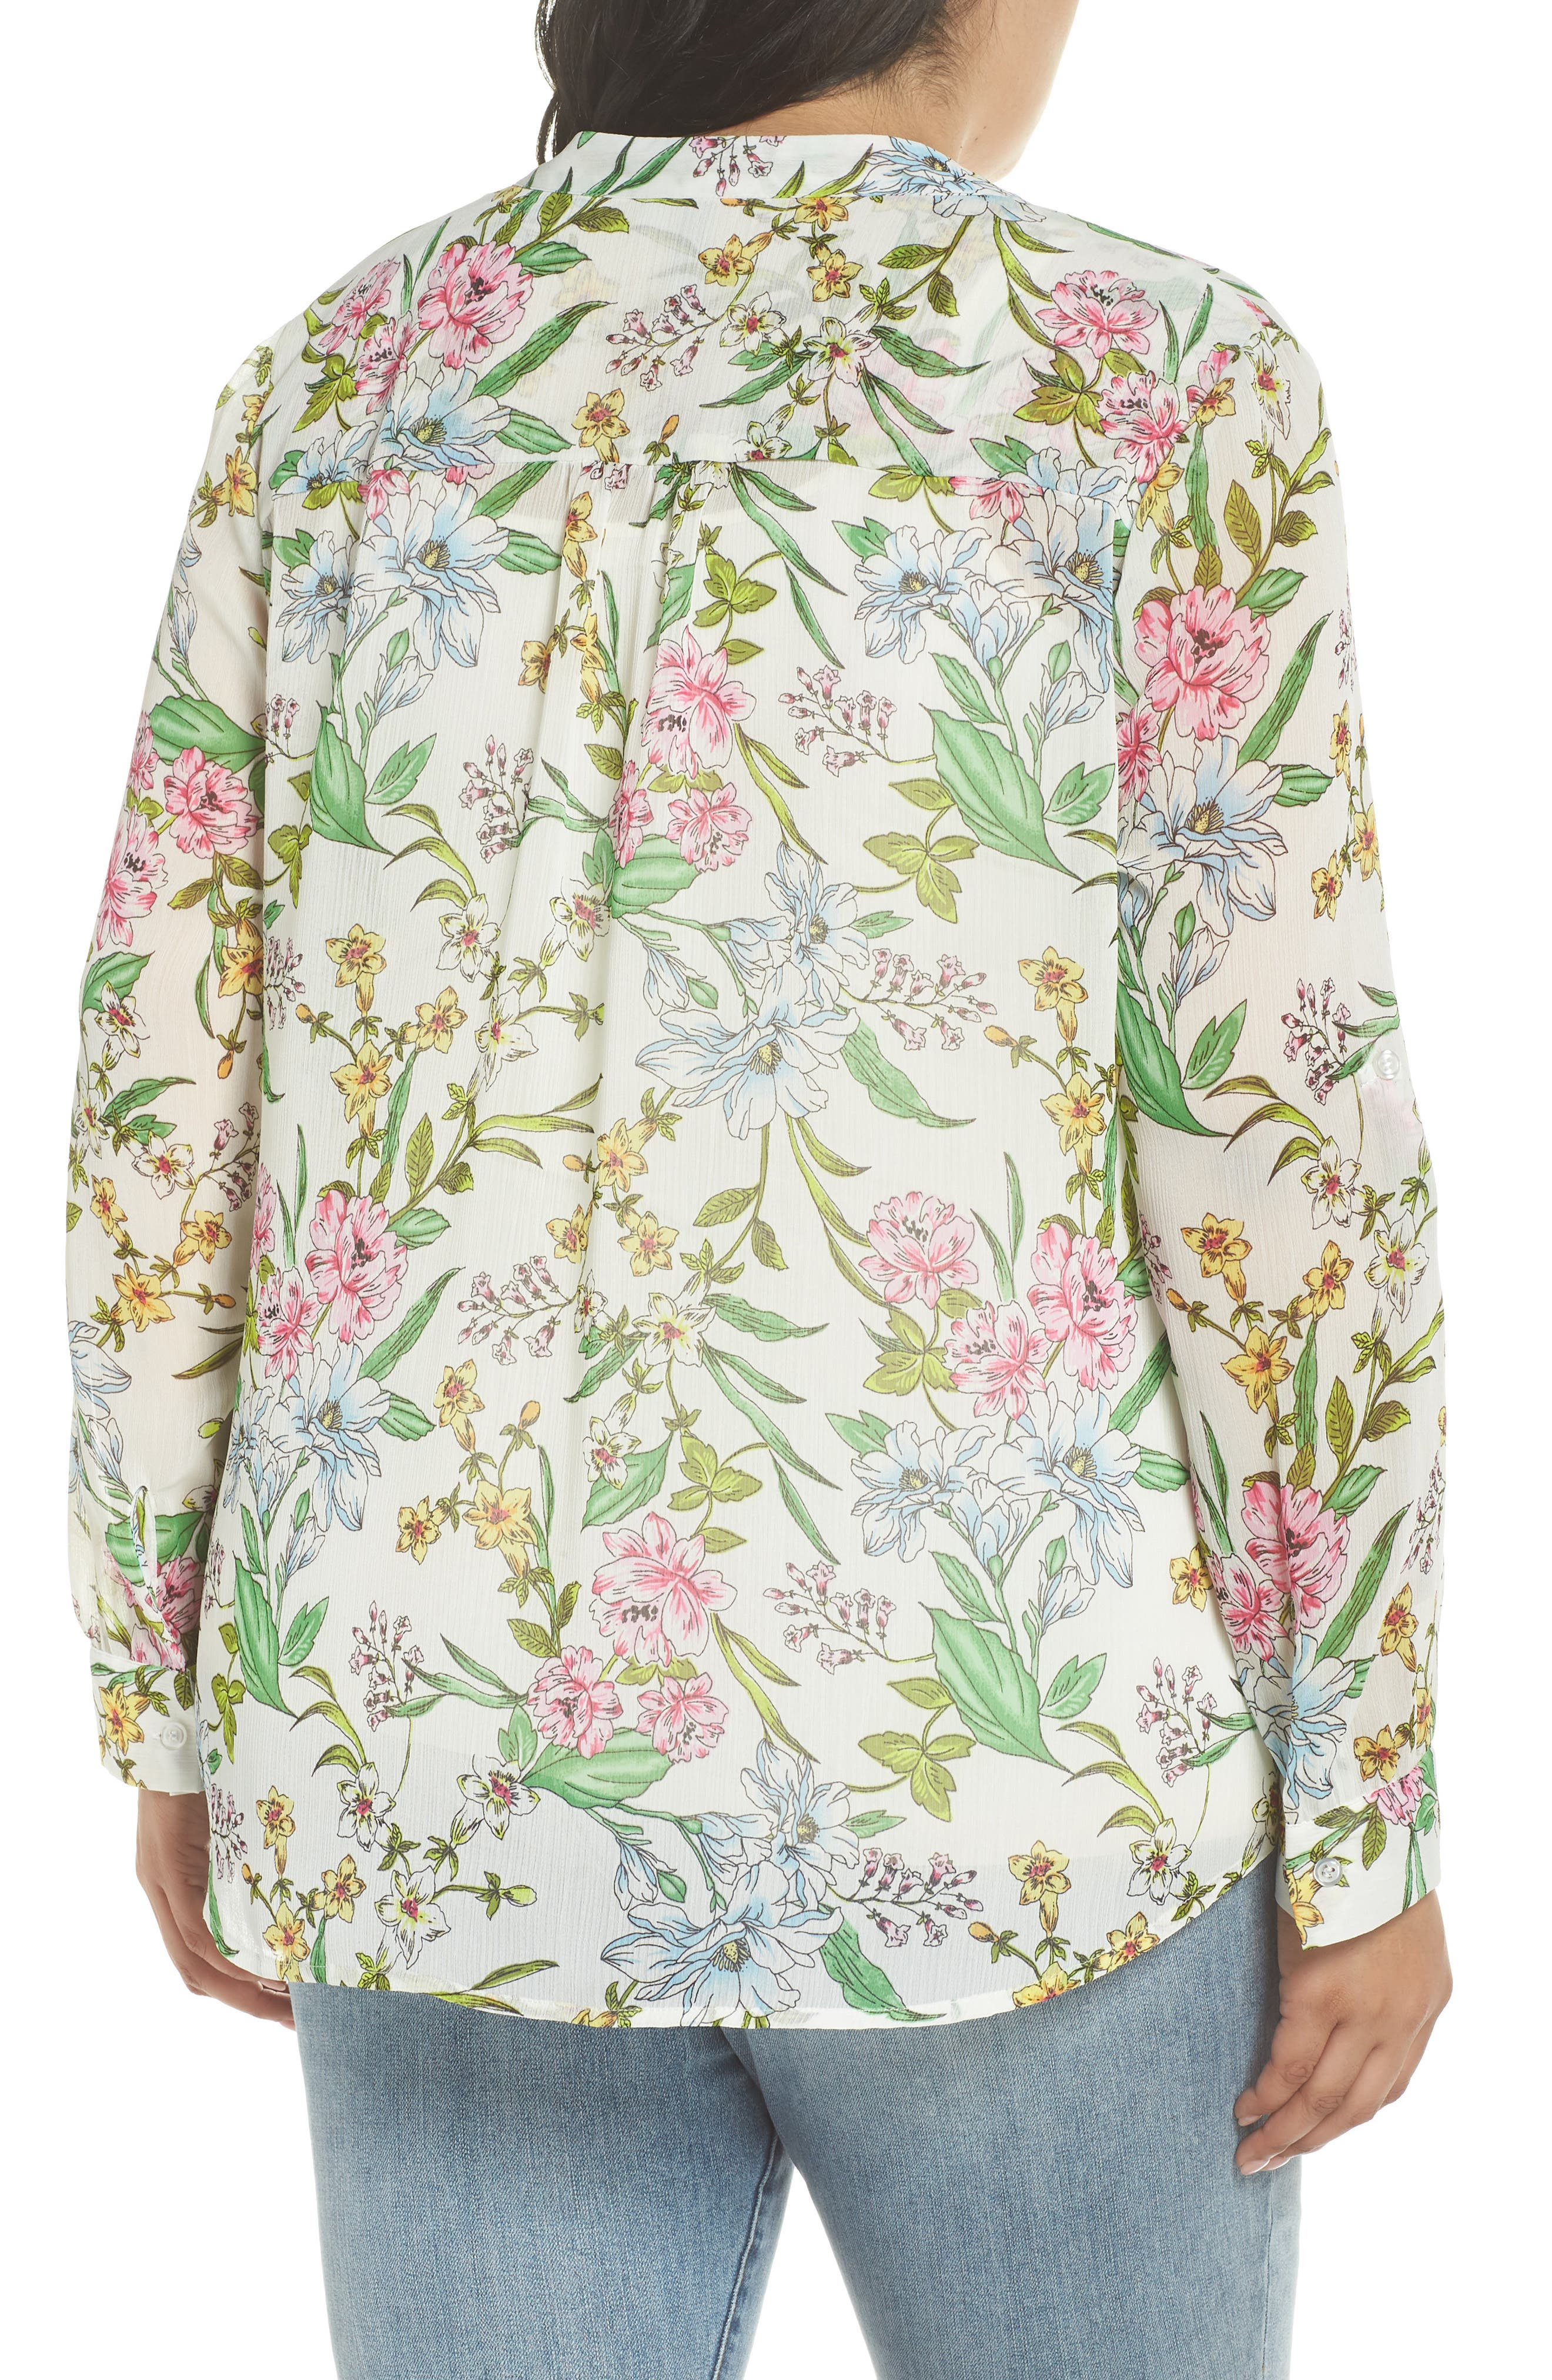 Jasmine Floral Roll Sleeve Top,                             Alternate thumbnail 2, color,                             307